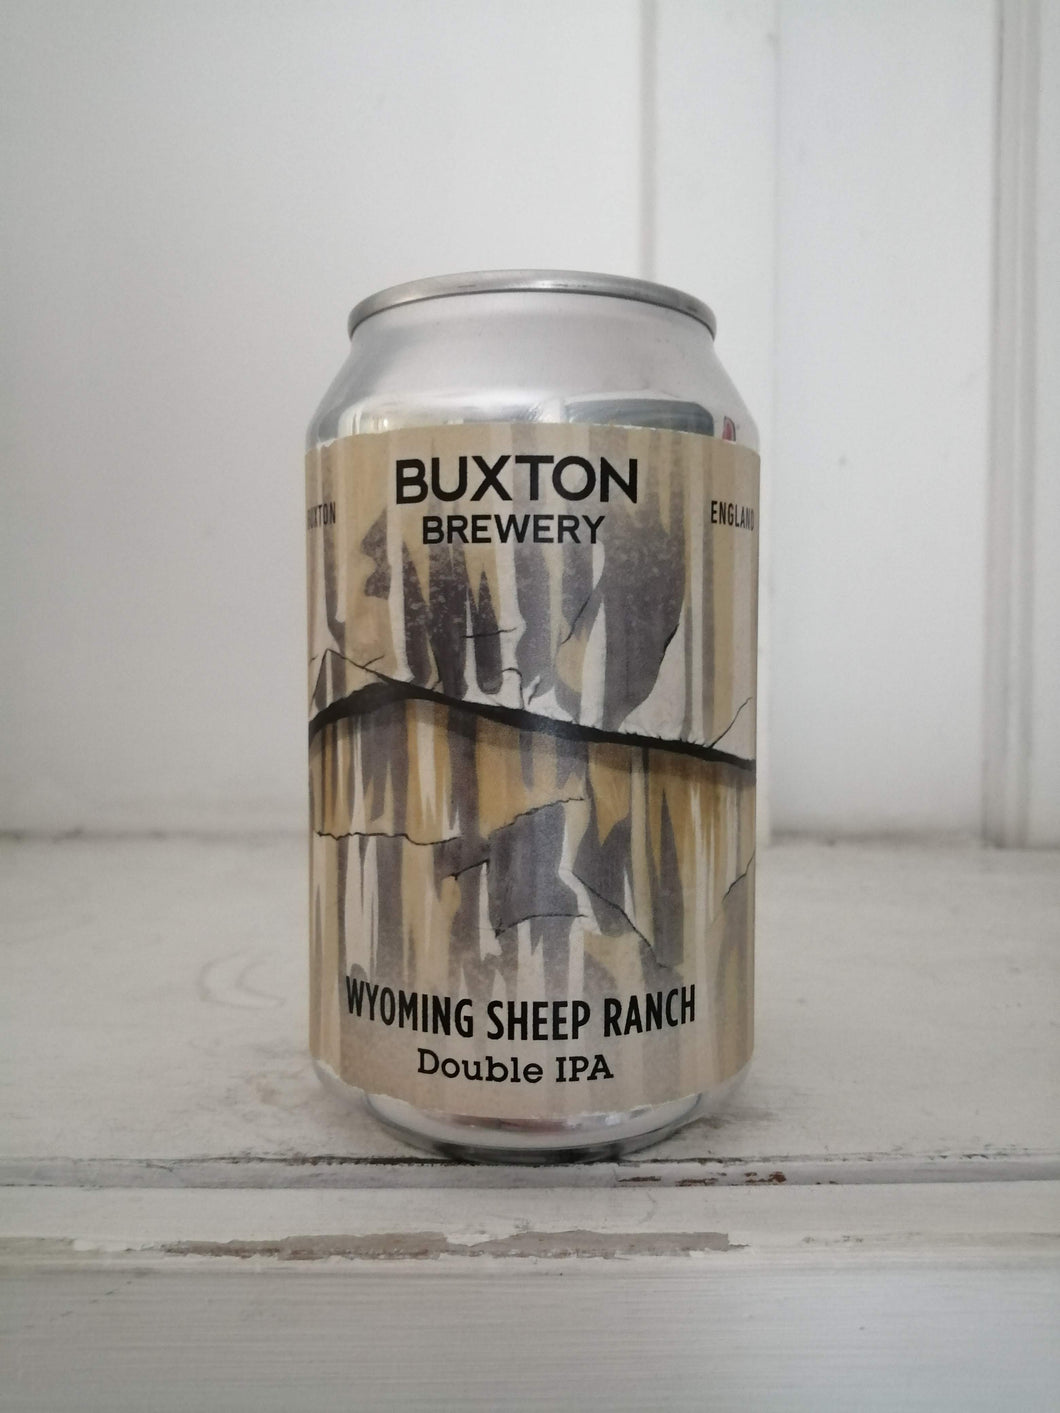 Buxton Wyoming Sheep Ranch 9% (330ml can)